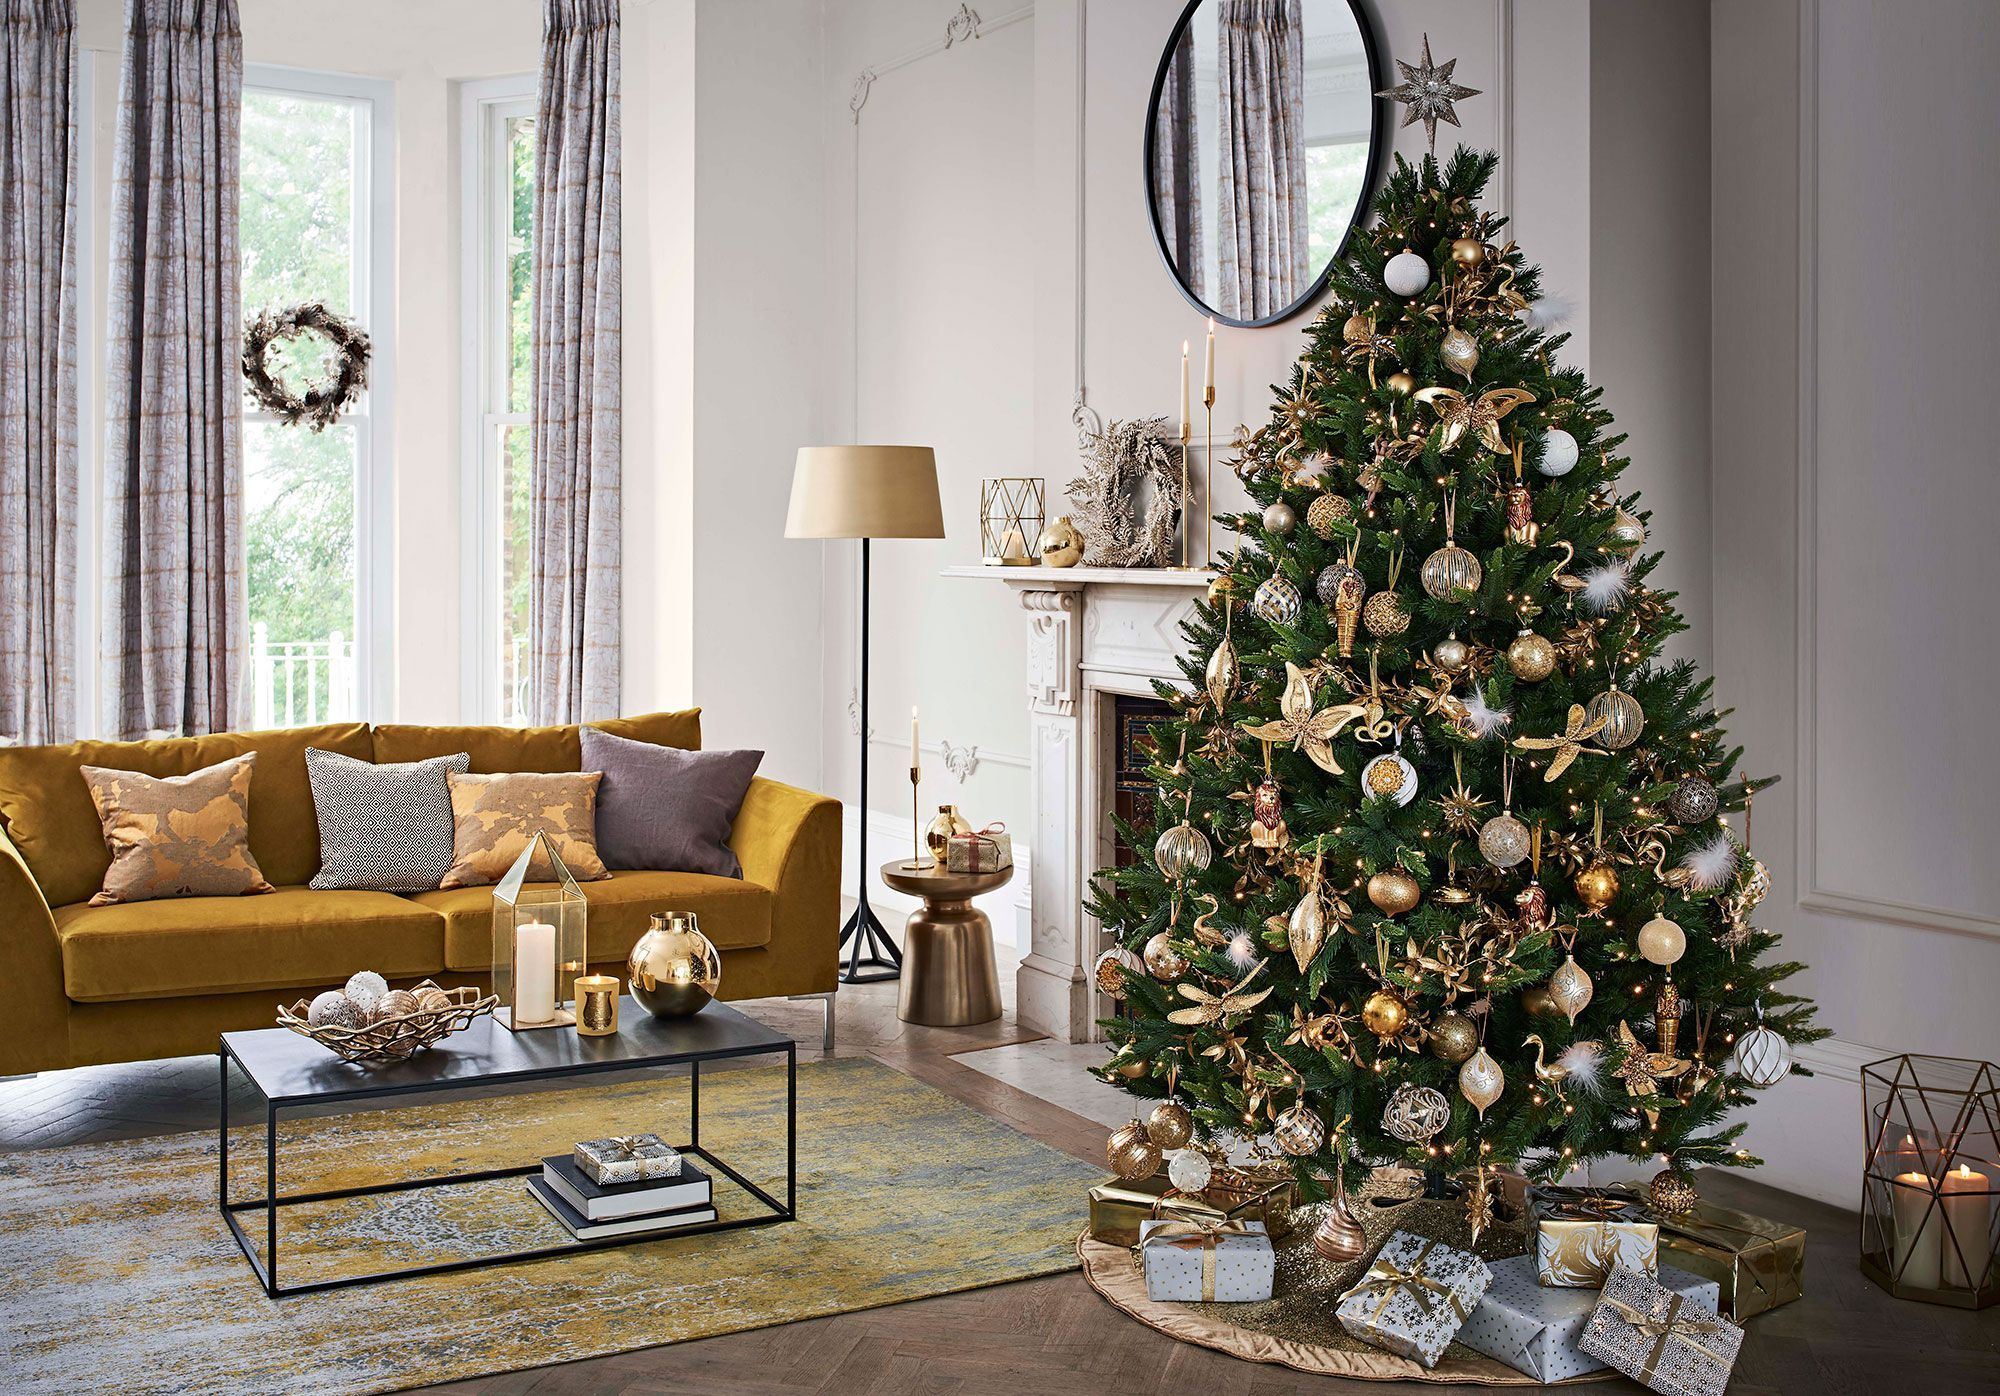 John Lewis Christmas Decorations.John Lewis Reveal Their 8 Christmas Decorating Themes For